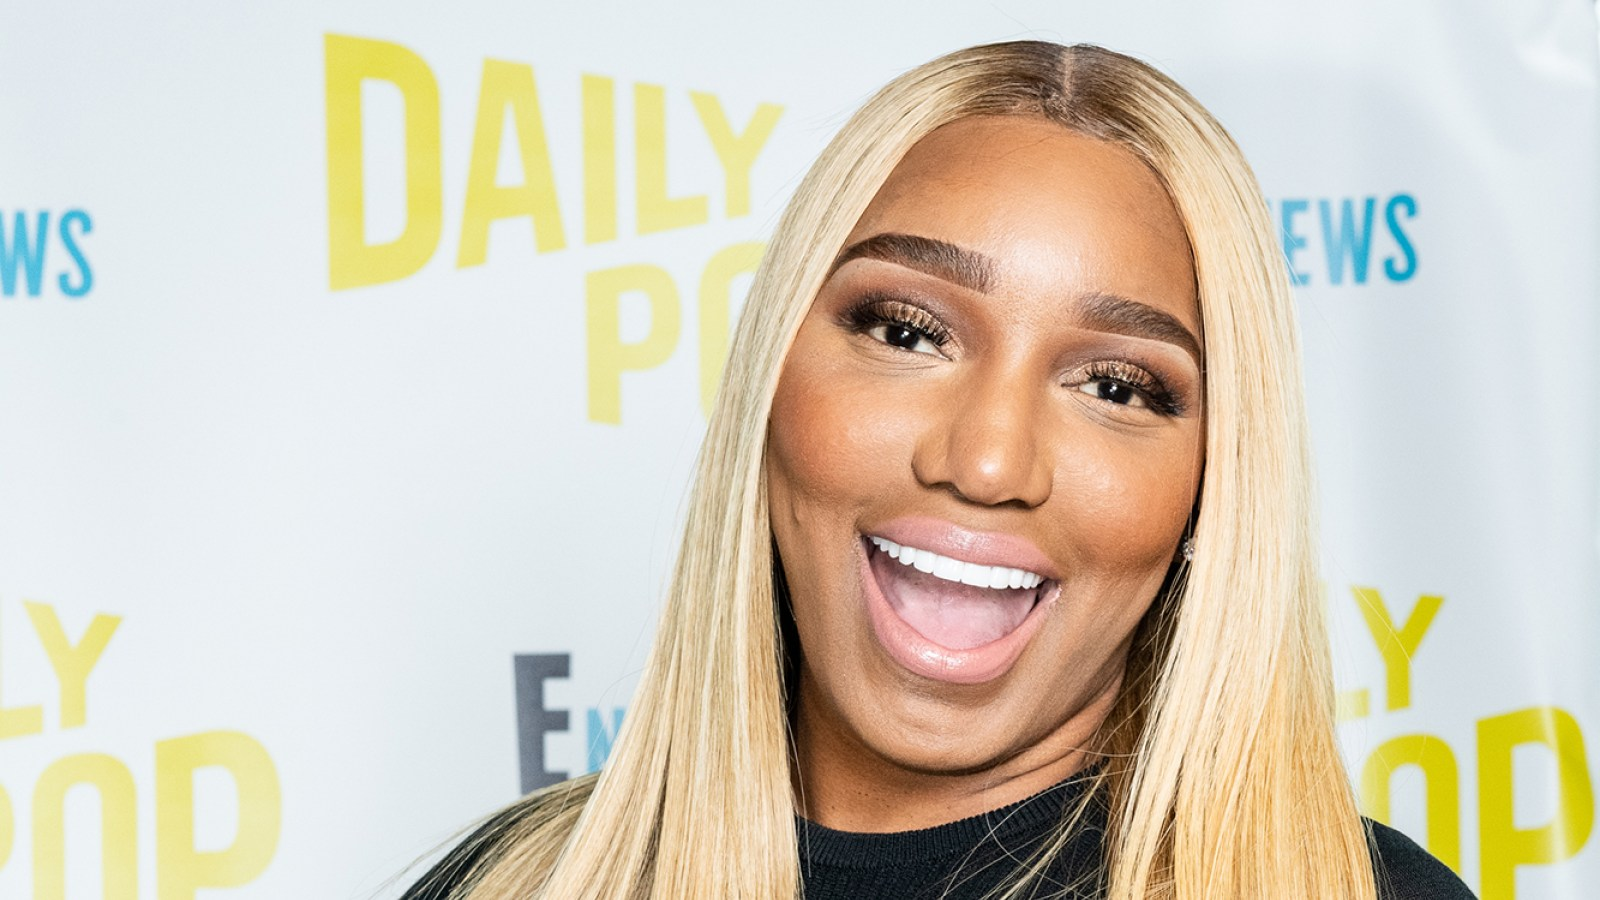 NeNe Leakes Prepared A Special Edition Of 'Cocktails & Conversation' With Big Freedia For Tomorrow